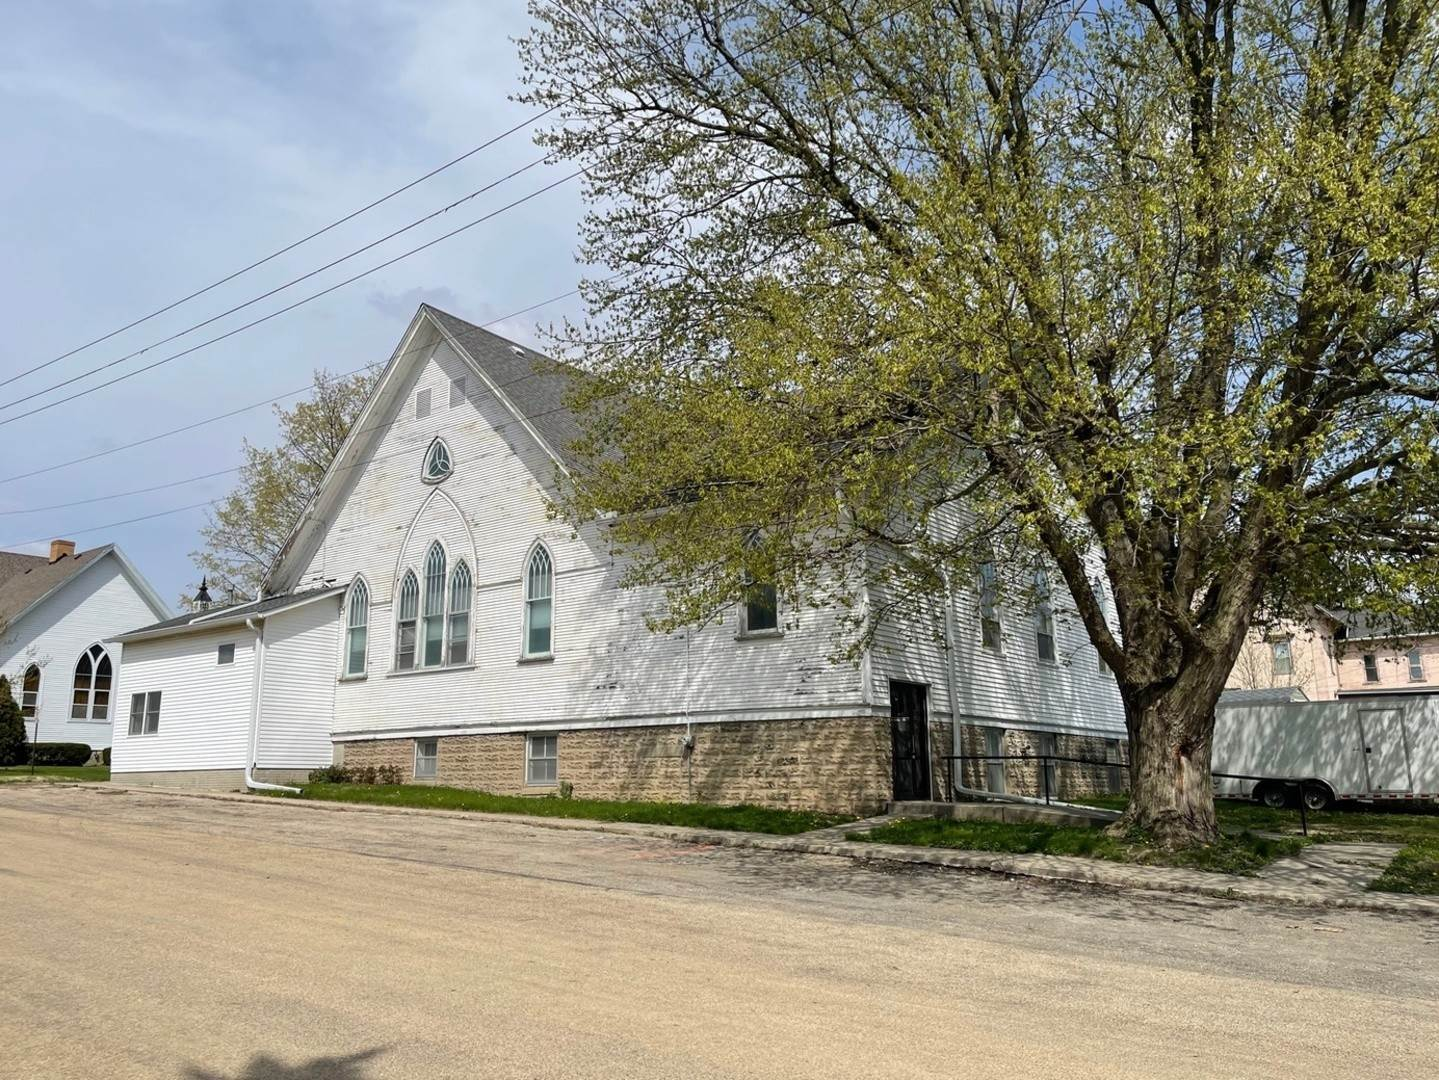 Commercial for Sale at 306 E Locust Street Lanark, Illinois 61046 United States